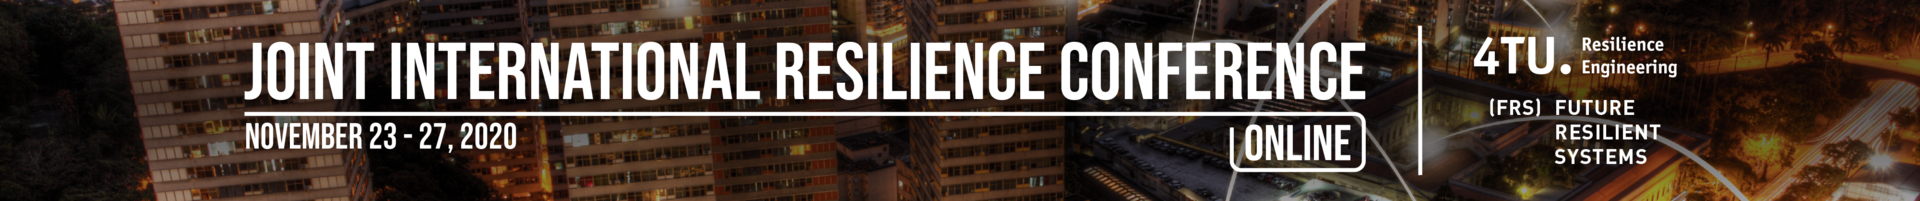 Joint International Resilience Conference 2020